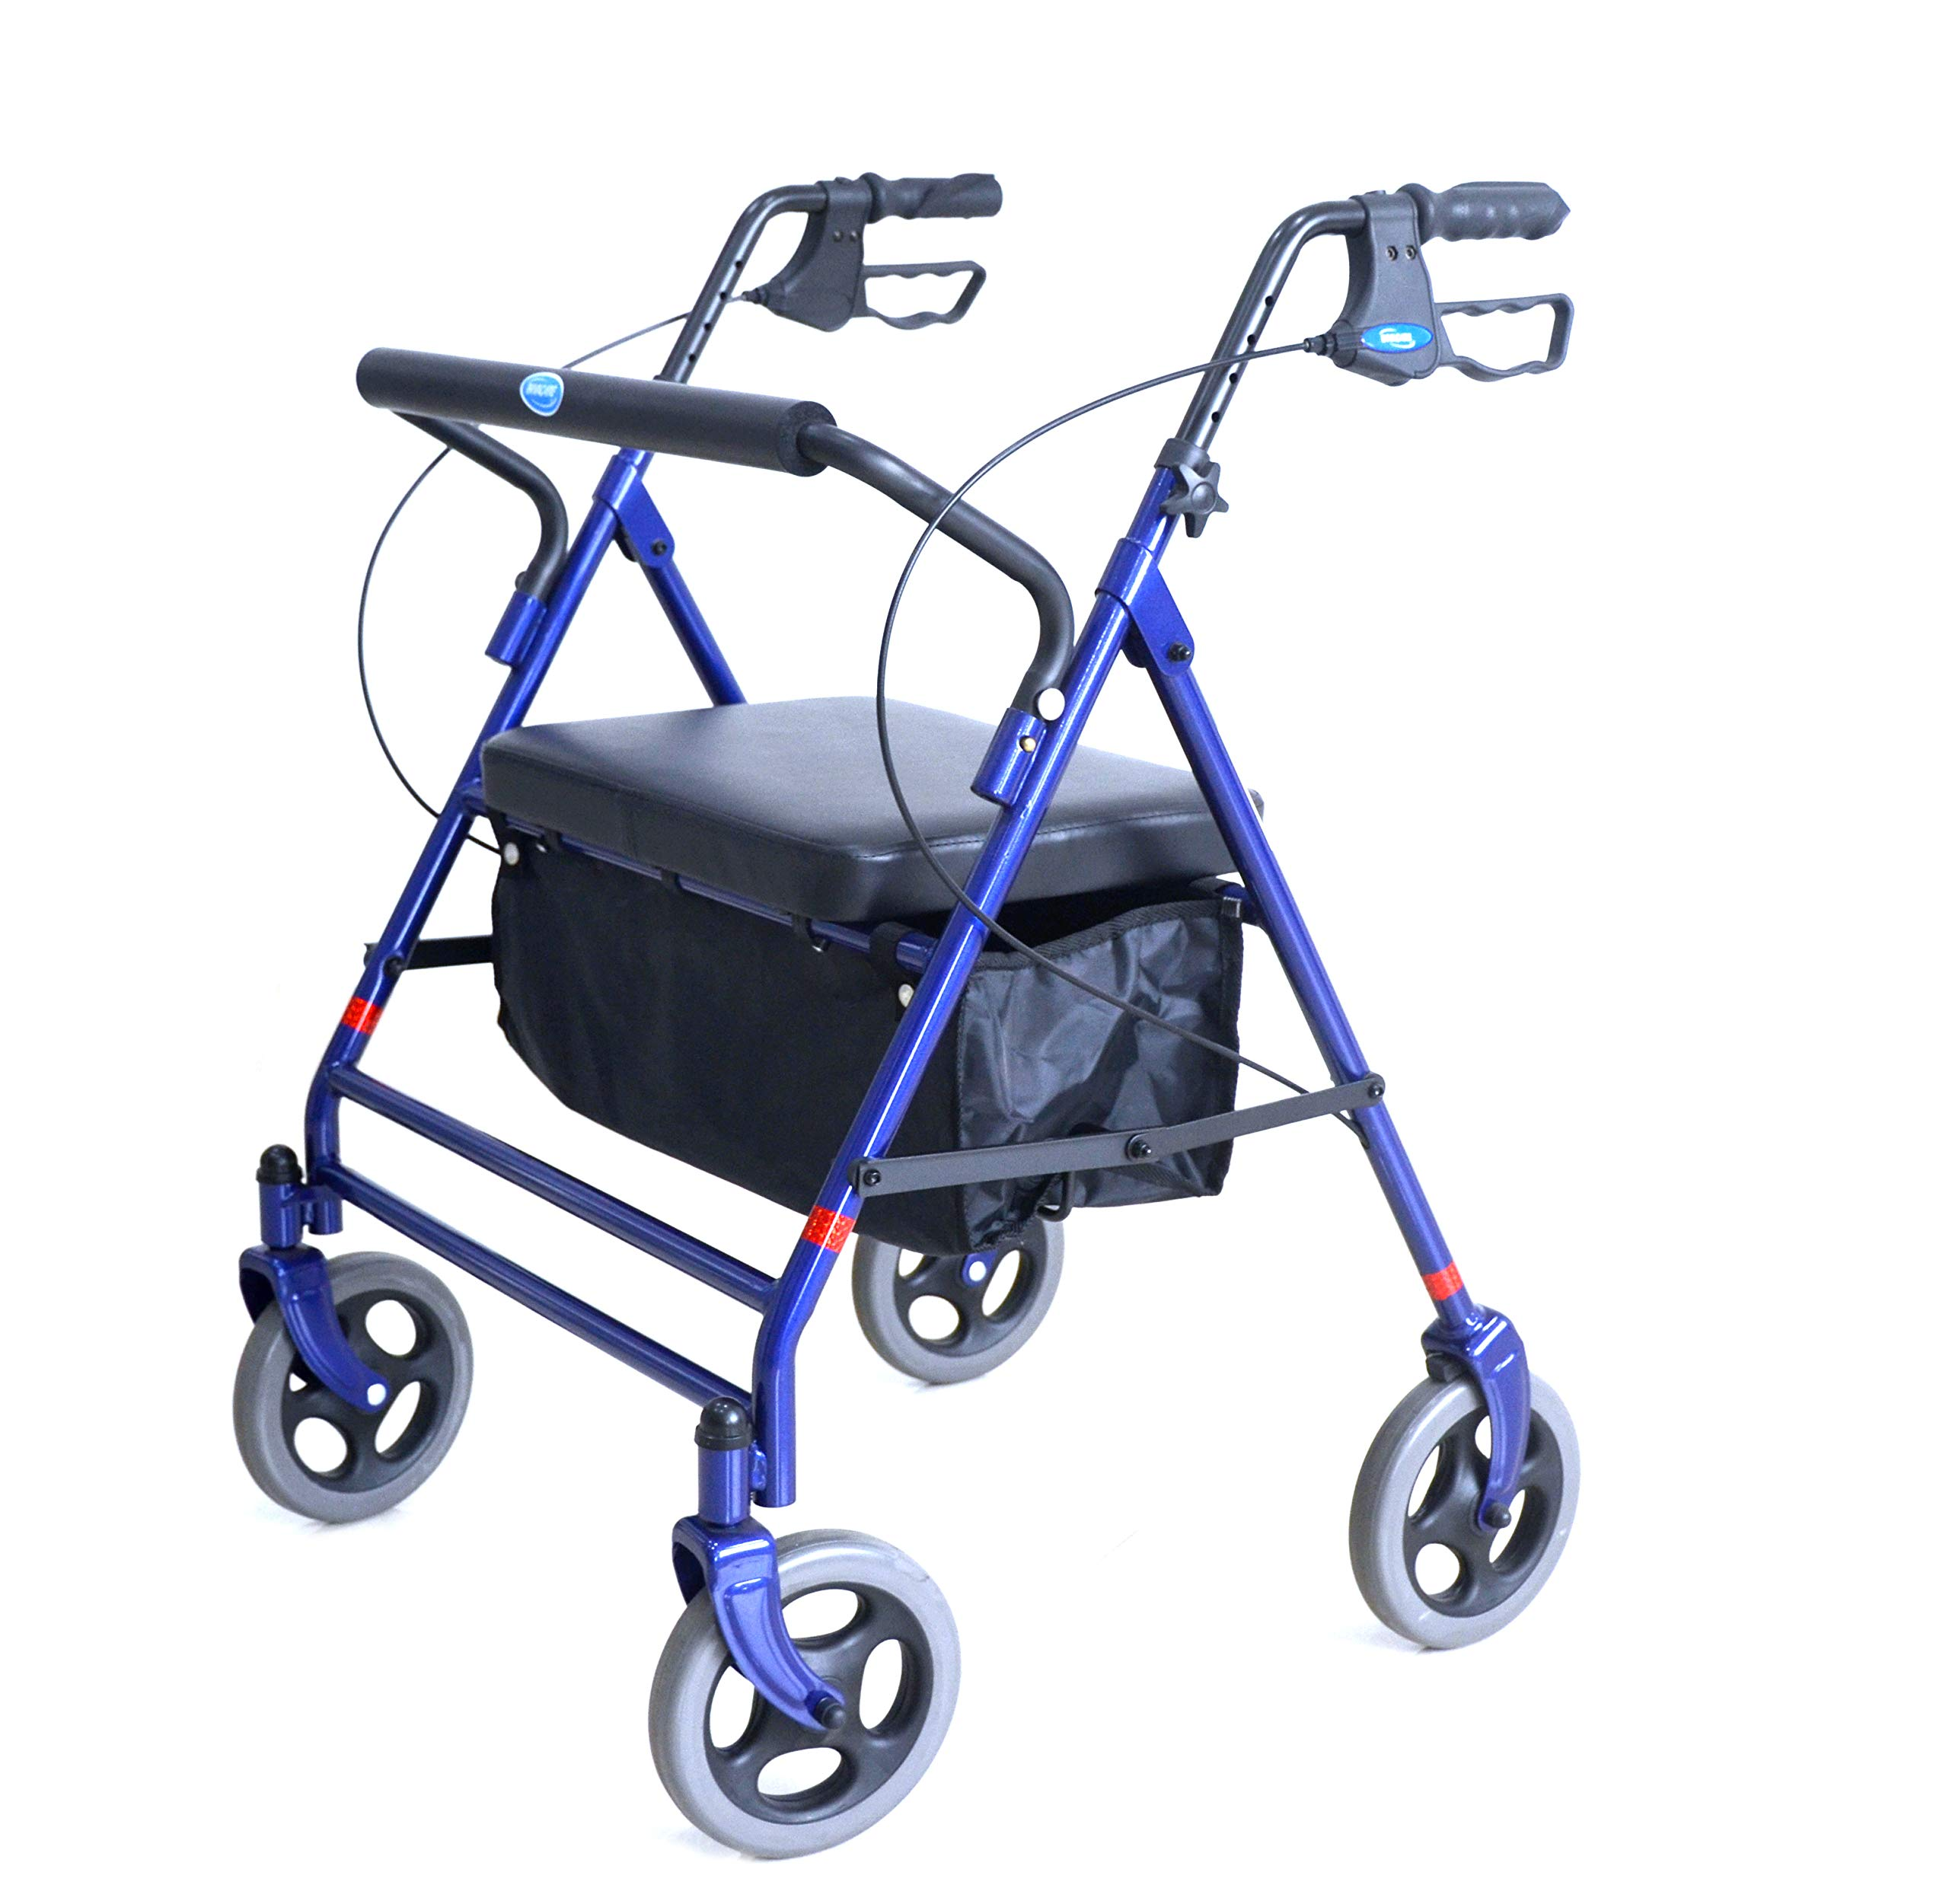 Invacare Bariatric Rollator, with Flip-up Padded Seat, 500 lb. Weight Capacity, 66550 by Invacare